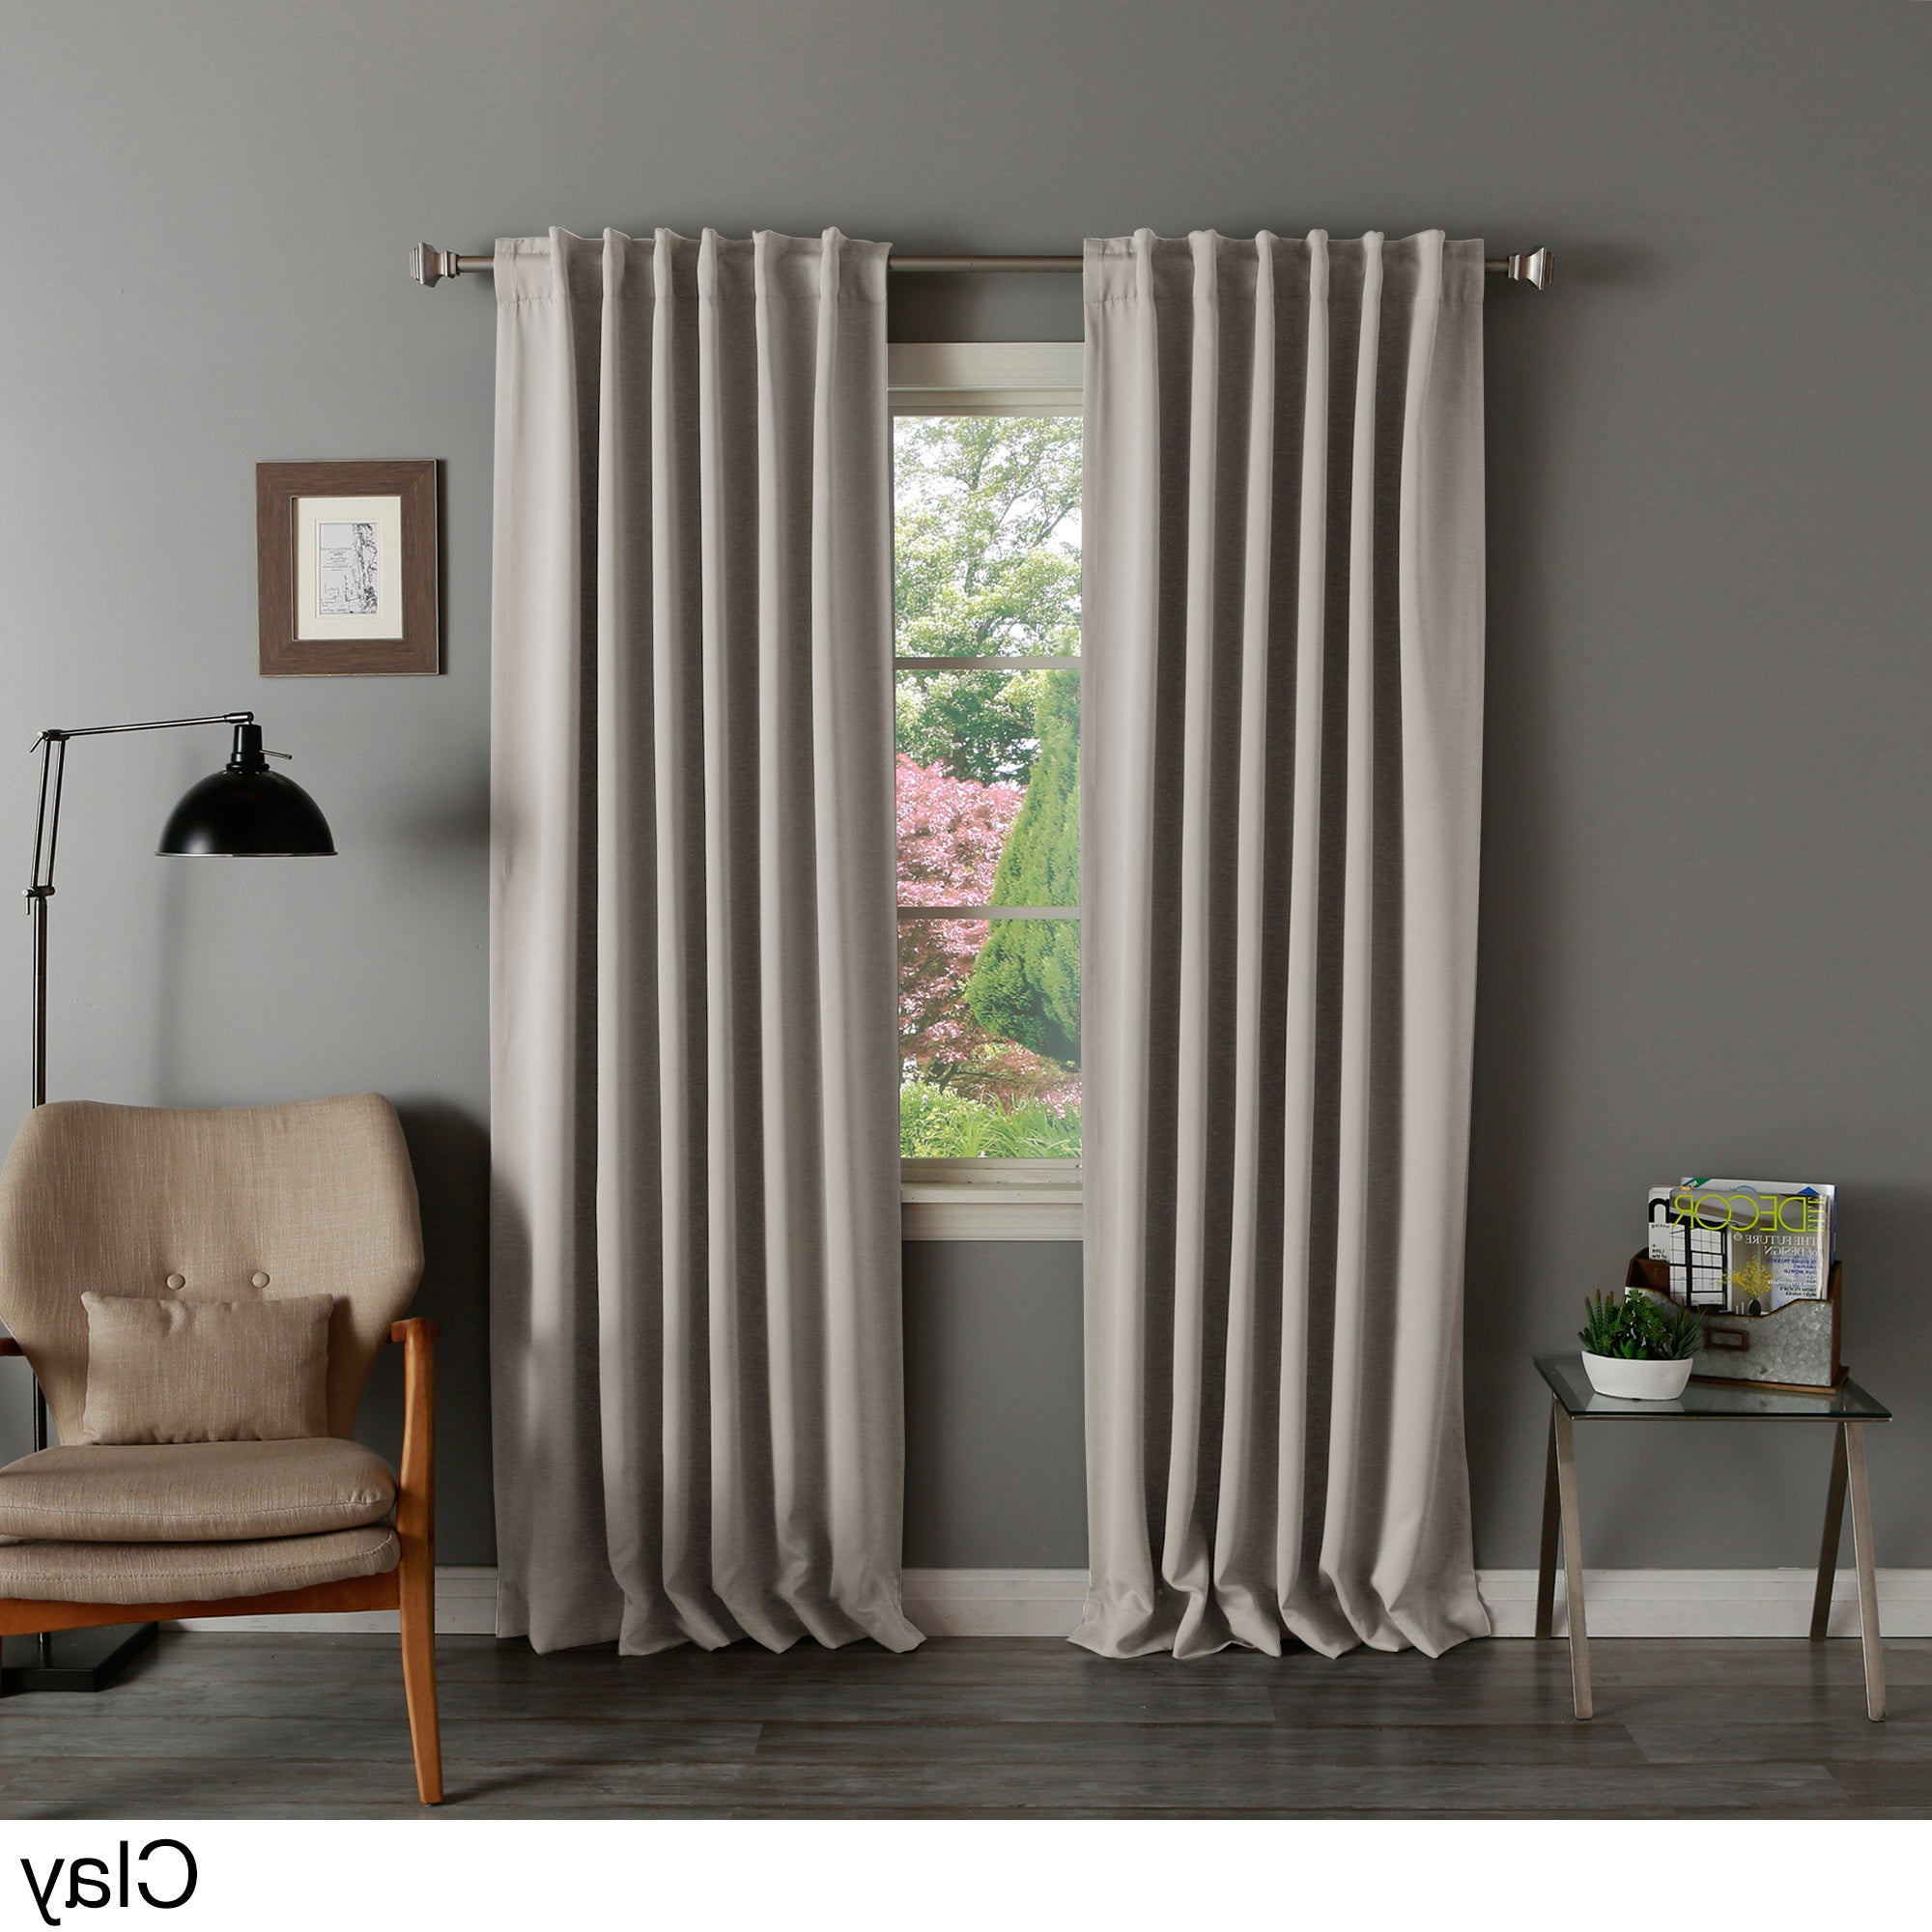 Solid Insulated Thermal Blackout Curtain Panel Pair Throughout Preferred Solid Insulated Thermal Blackout Long Length Curtain Panel Pairs (View 6 of 20)